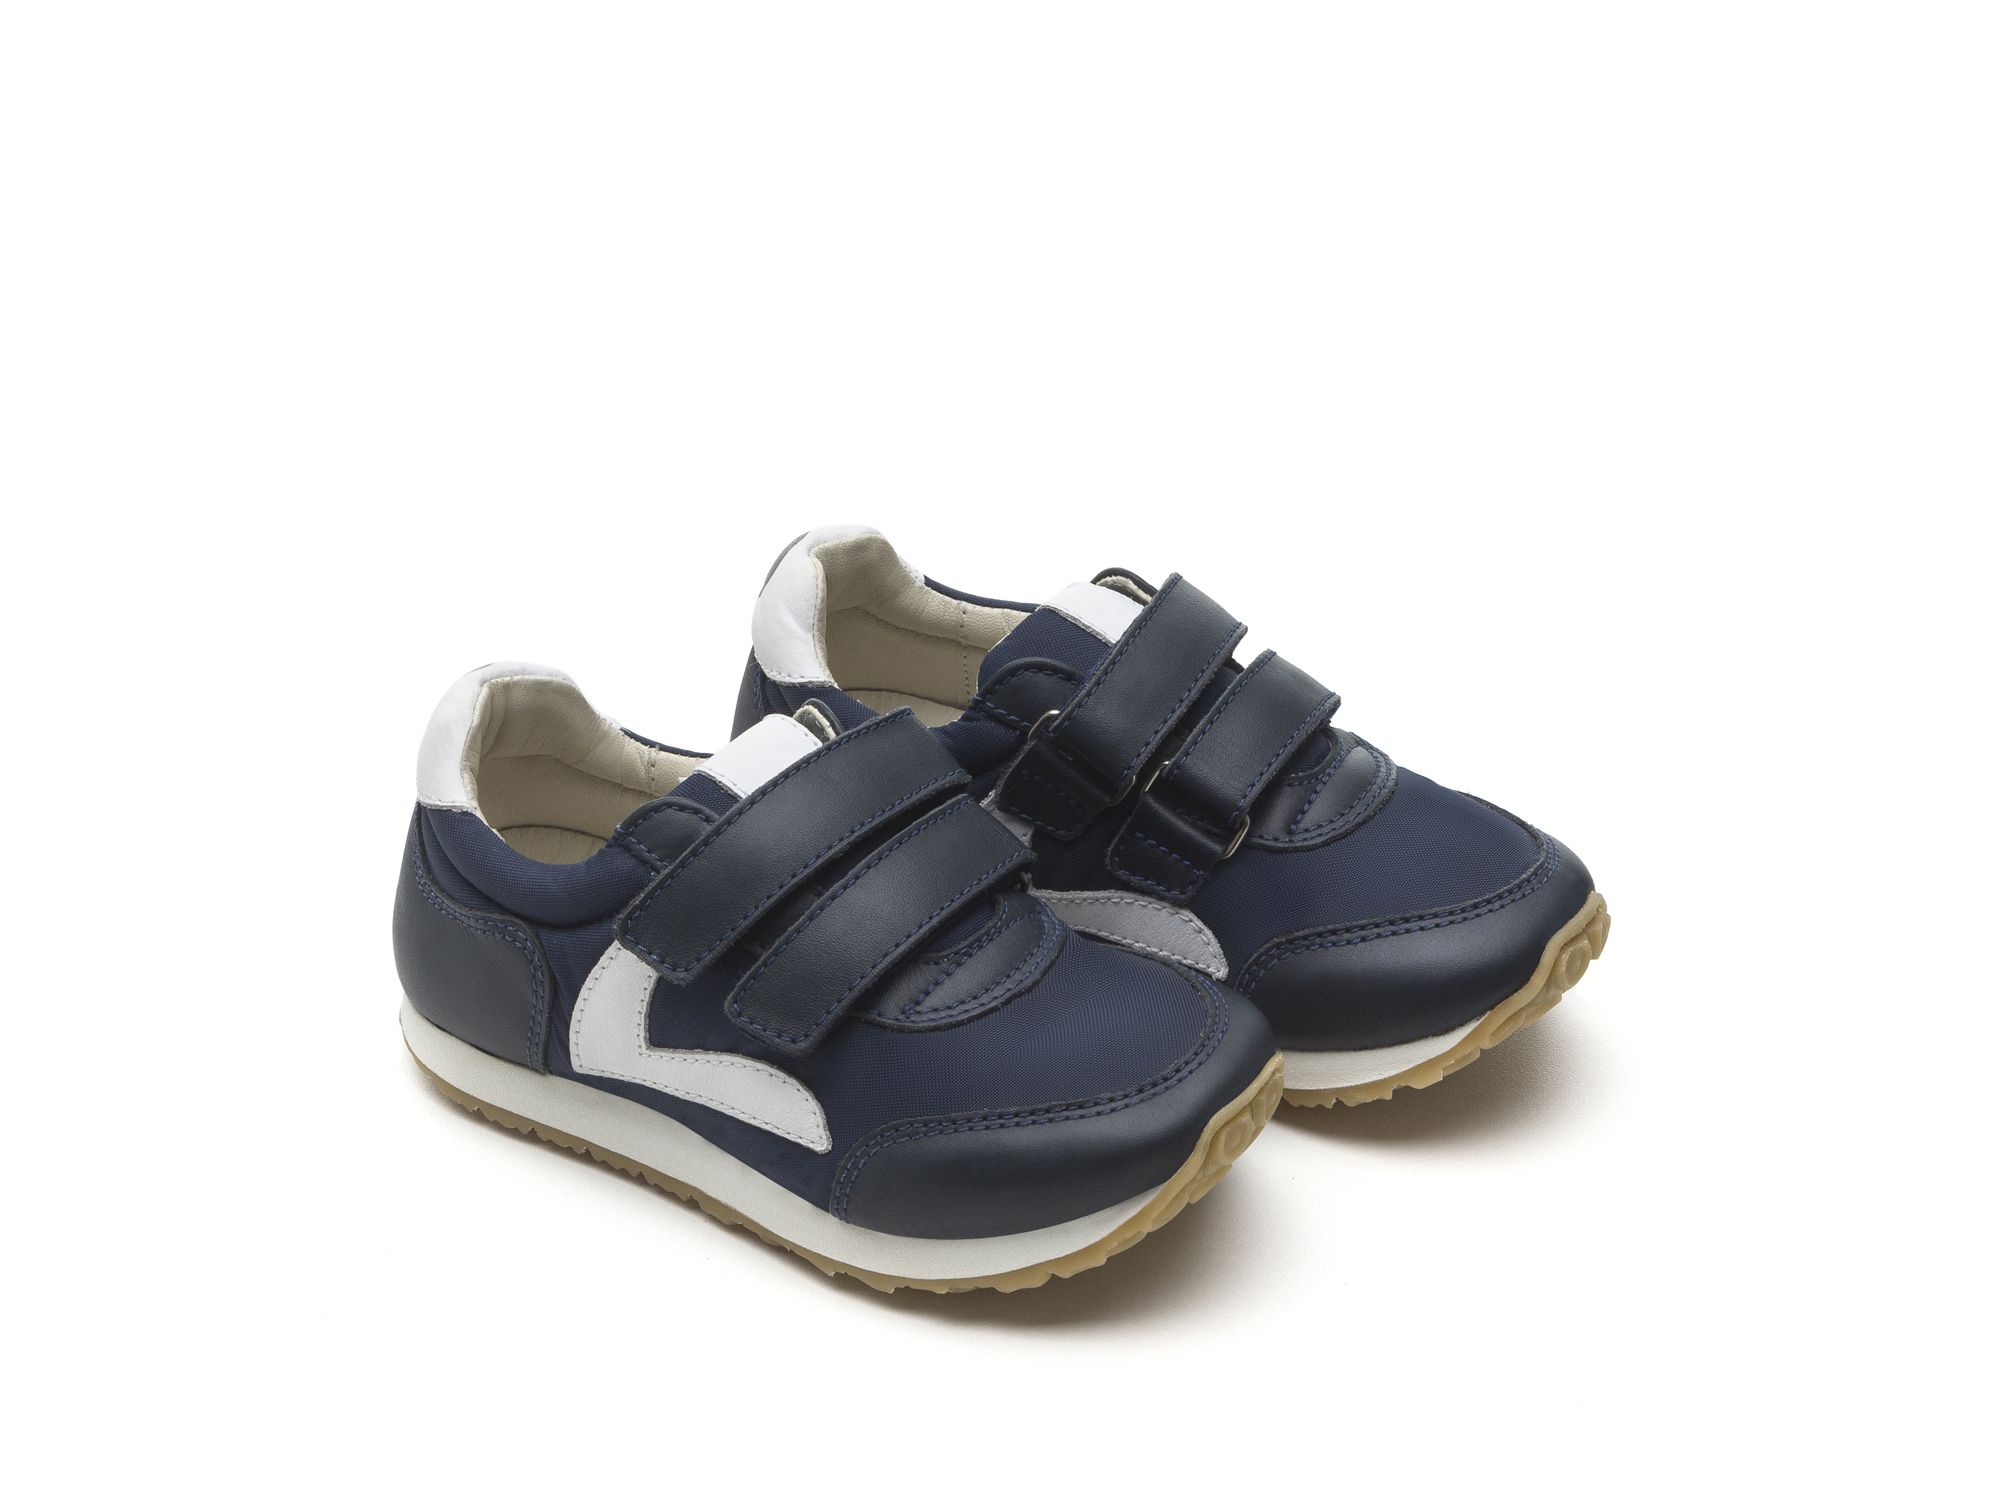 Tênis Little Jump Navy Nylon/ Navy Toddler for ages 2 to 4 years - 0